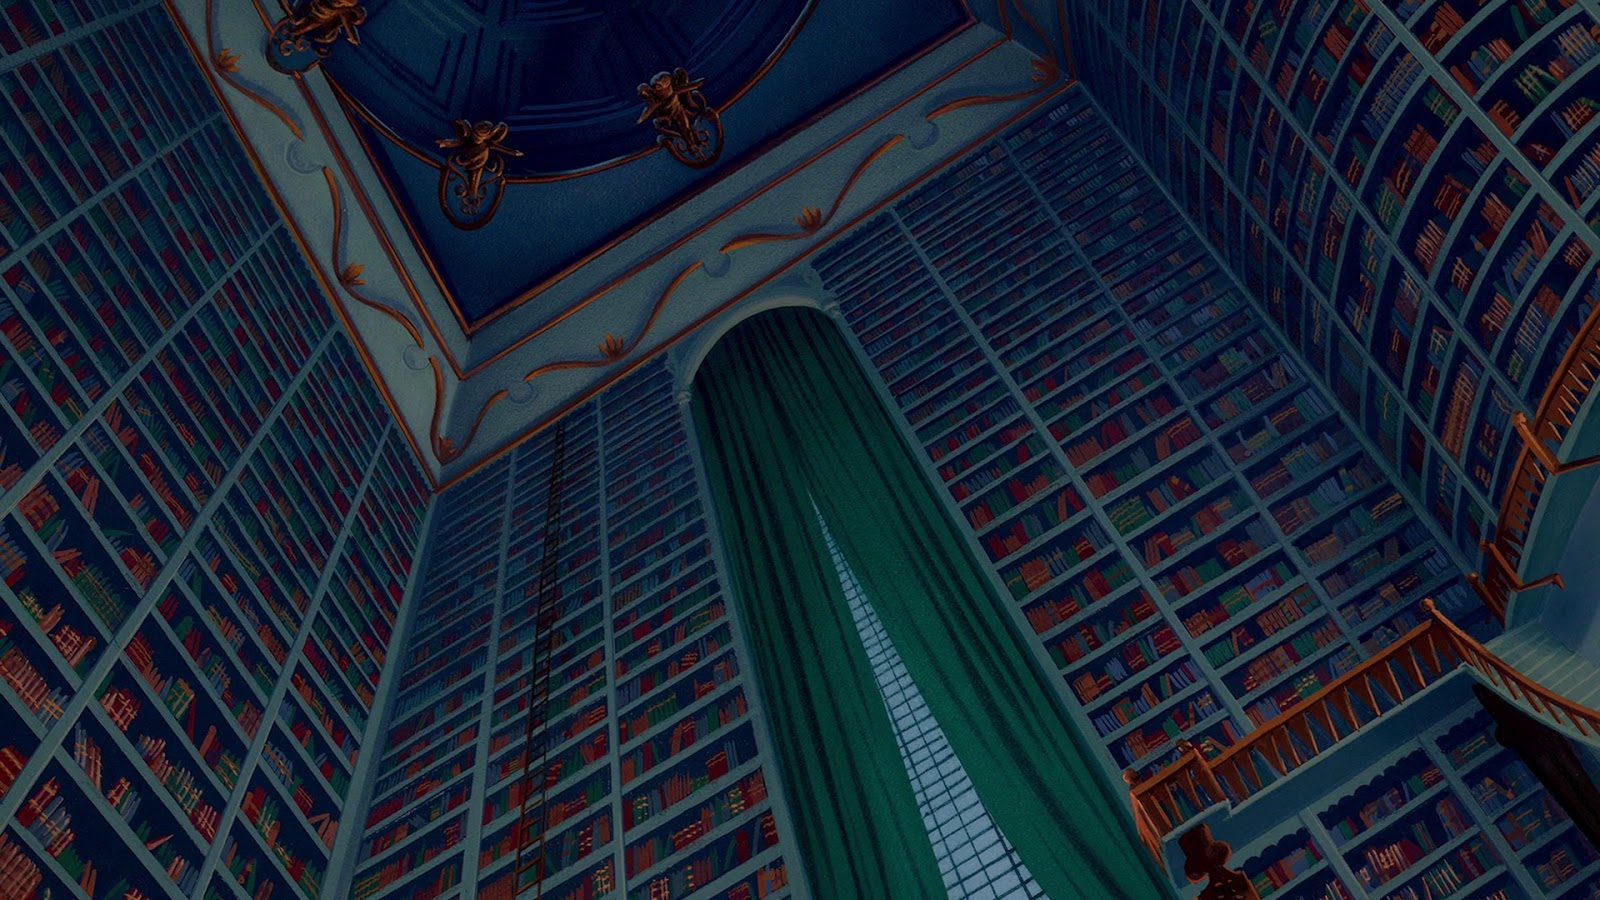 Even The Glorious Library Is Filmed Askew While This Scene Isnt Gothic In Tone It Serves To Accent Sheer Size Of Room And Disorientation